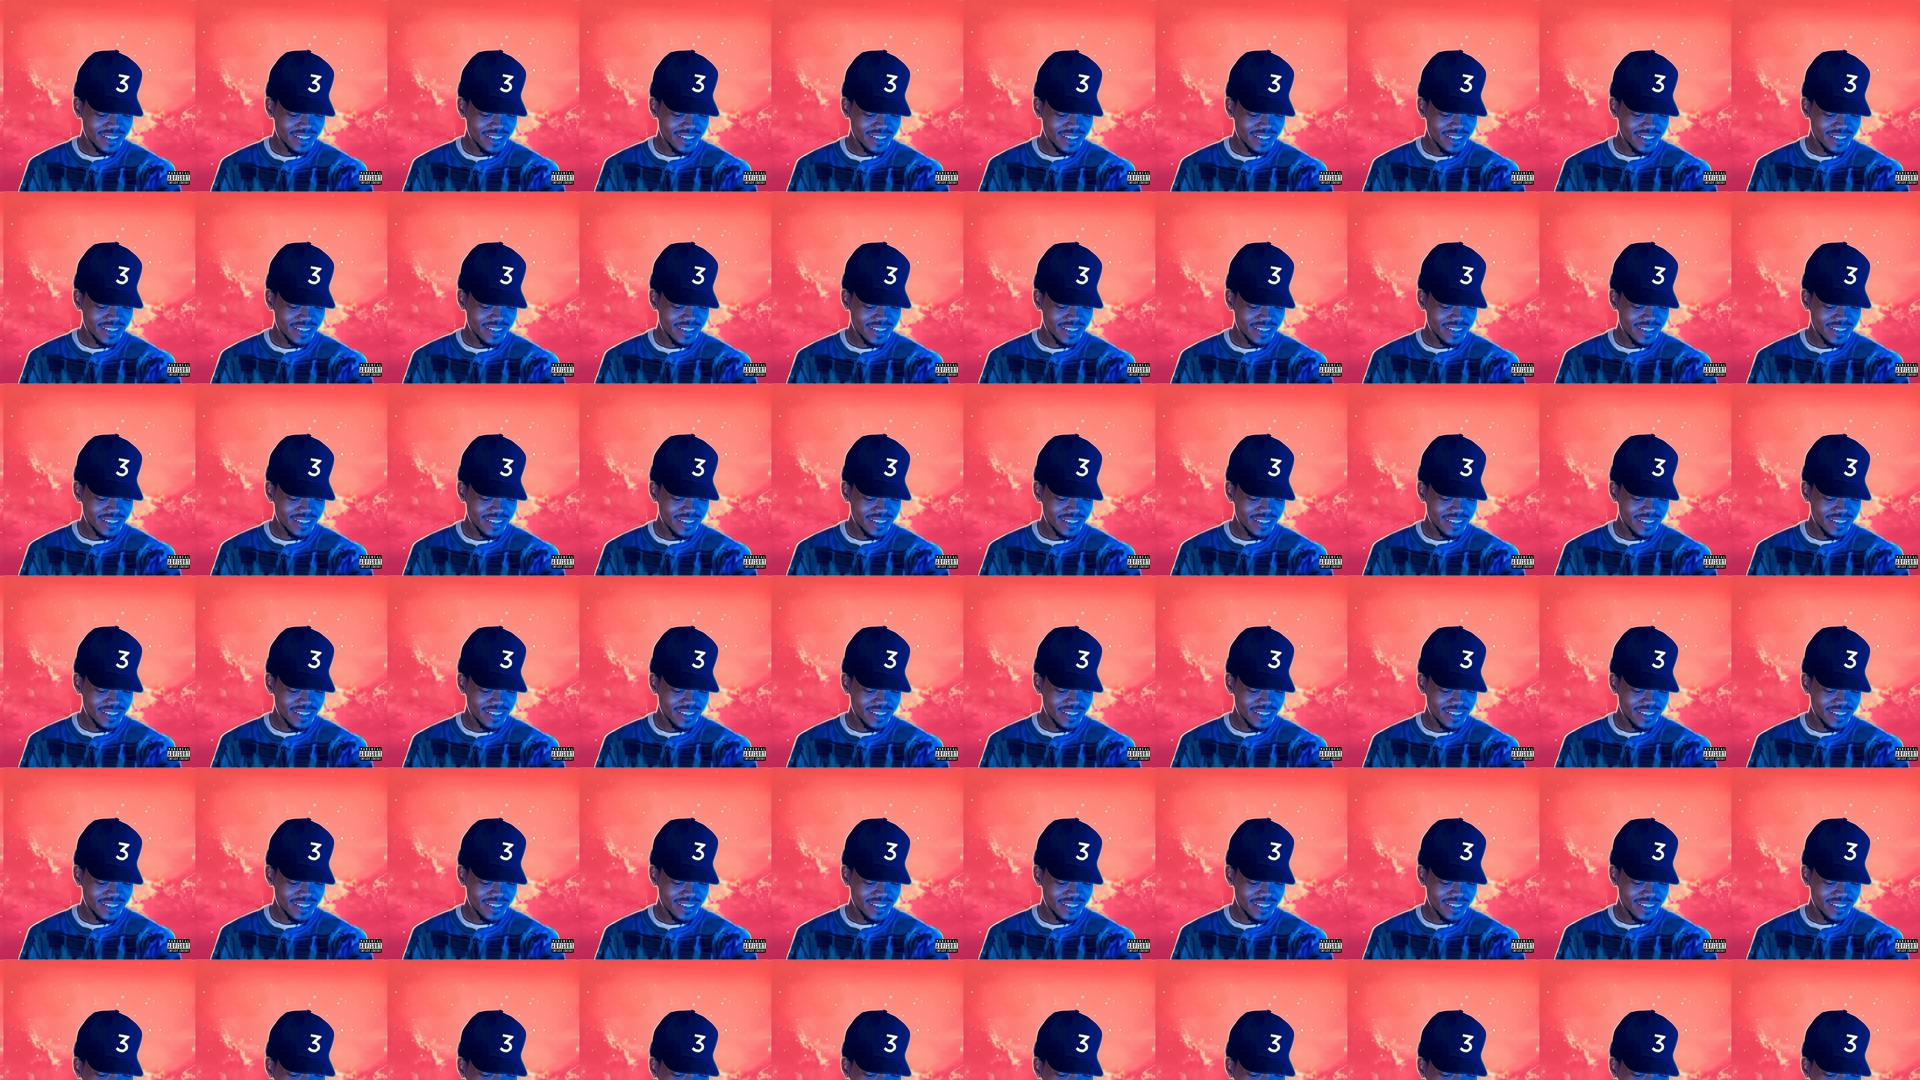 Chance Rapper Coloring Book Wallpaper Tiled Desktop Wallpaper